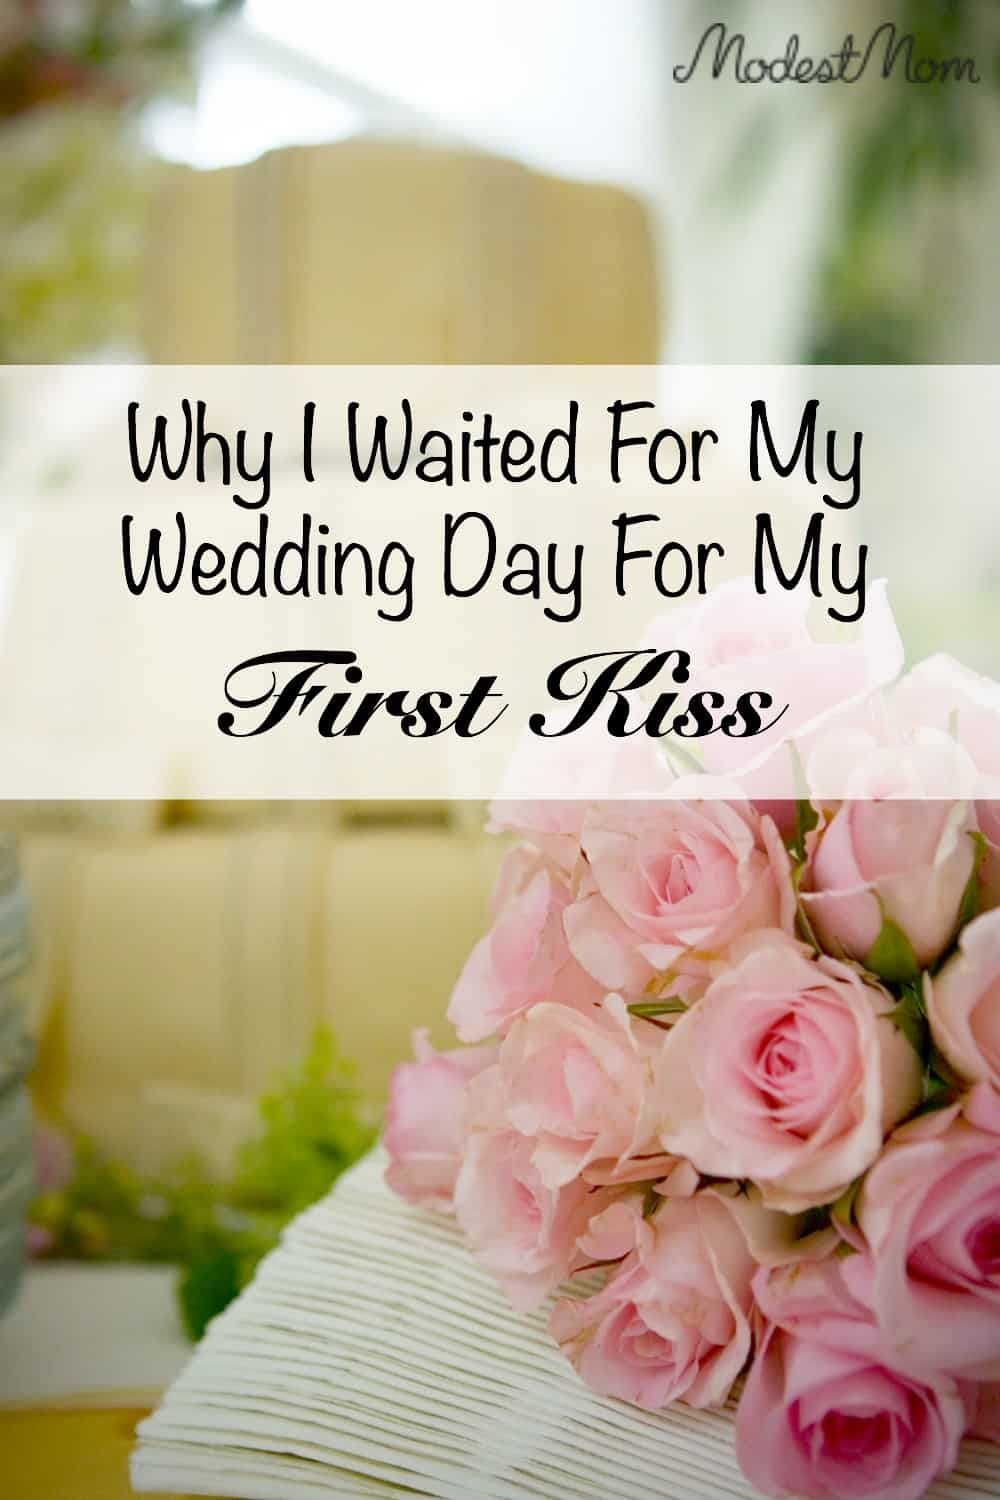 Why I Waited For My Wedding Day For My First Kiss